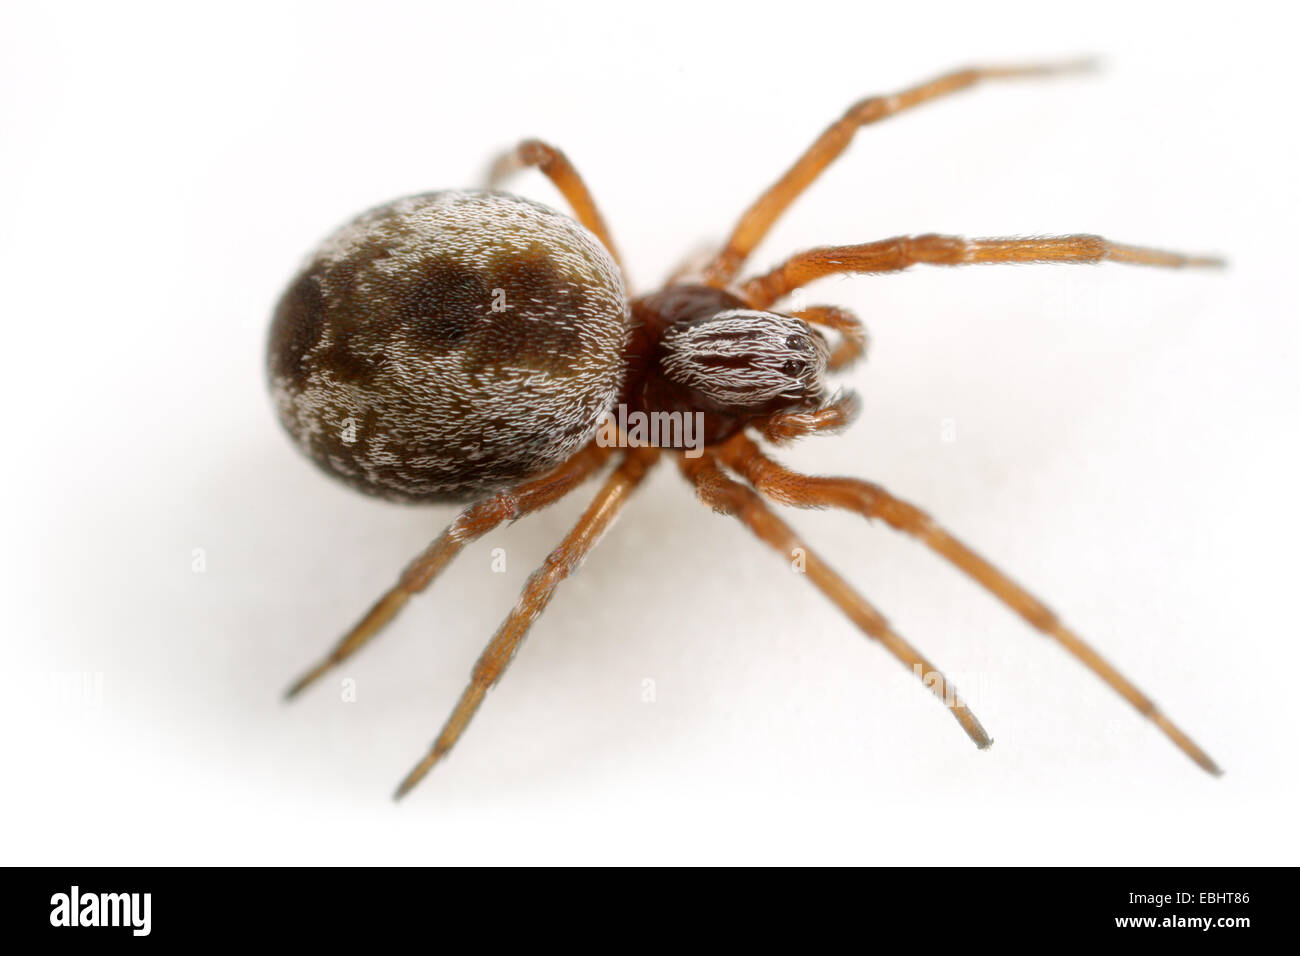 Female Dictyna arundinacea spider on white background. Family Dictynidae, Meshweb weavers. - Stock Image